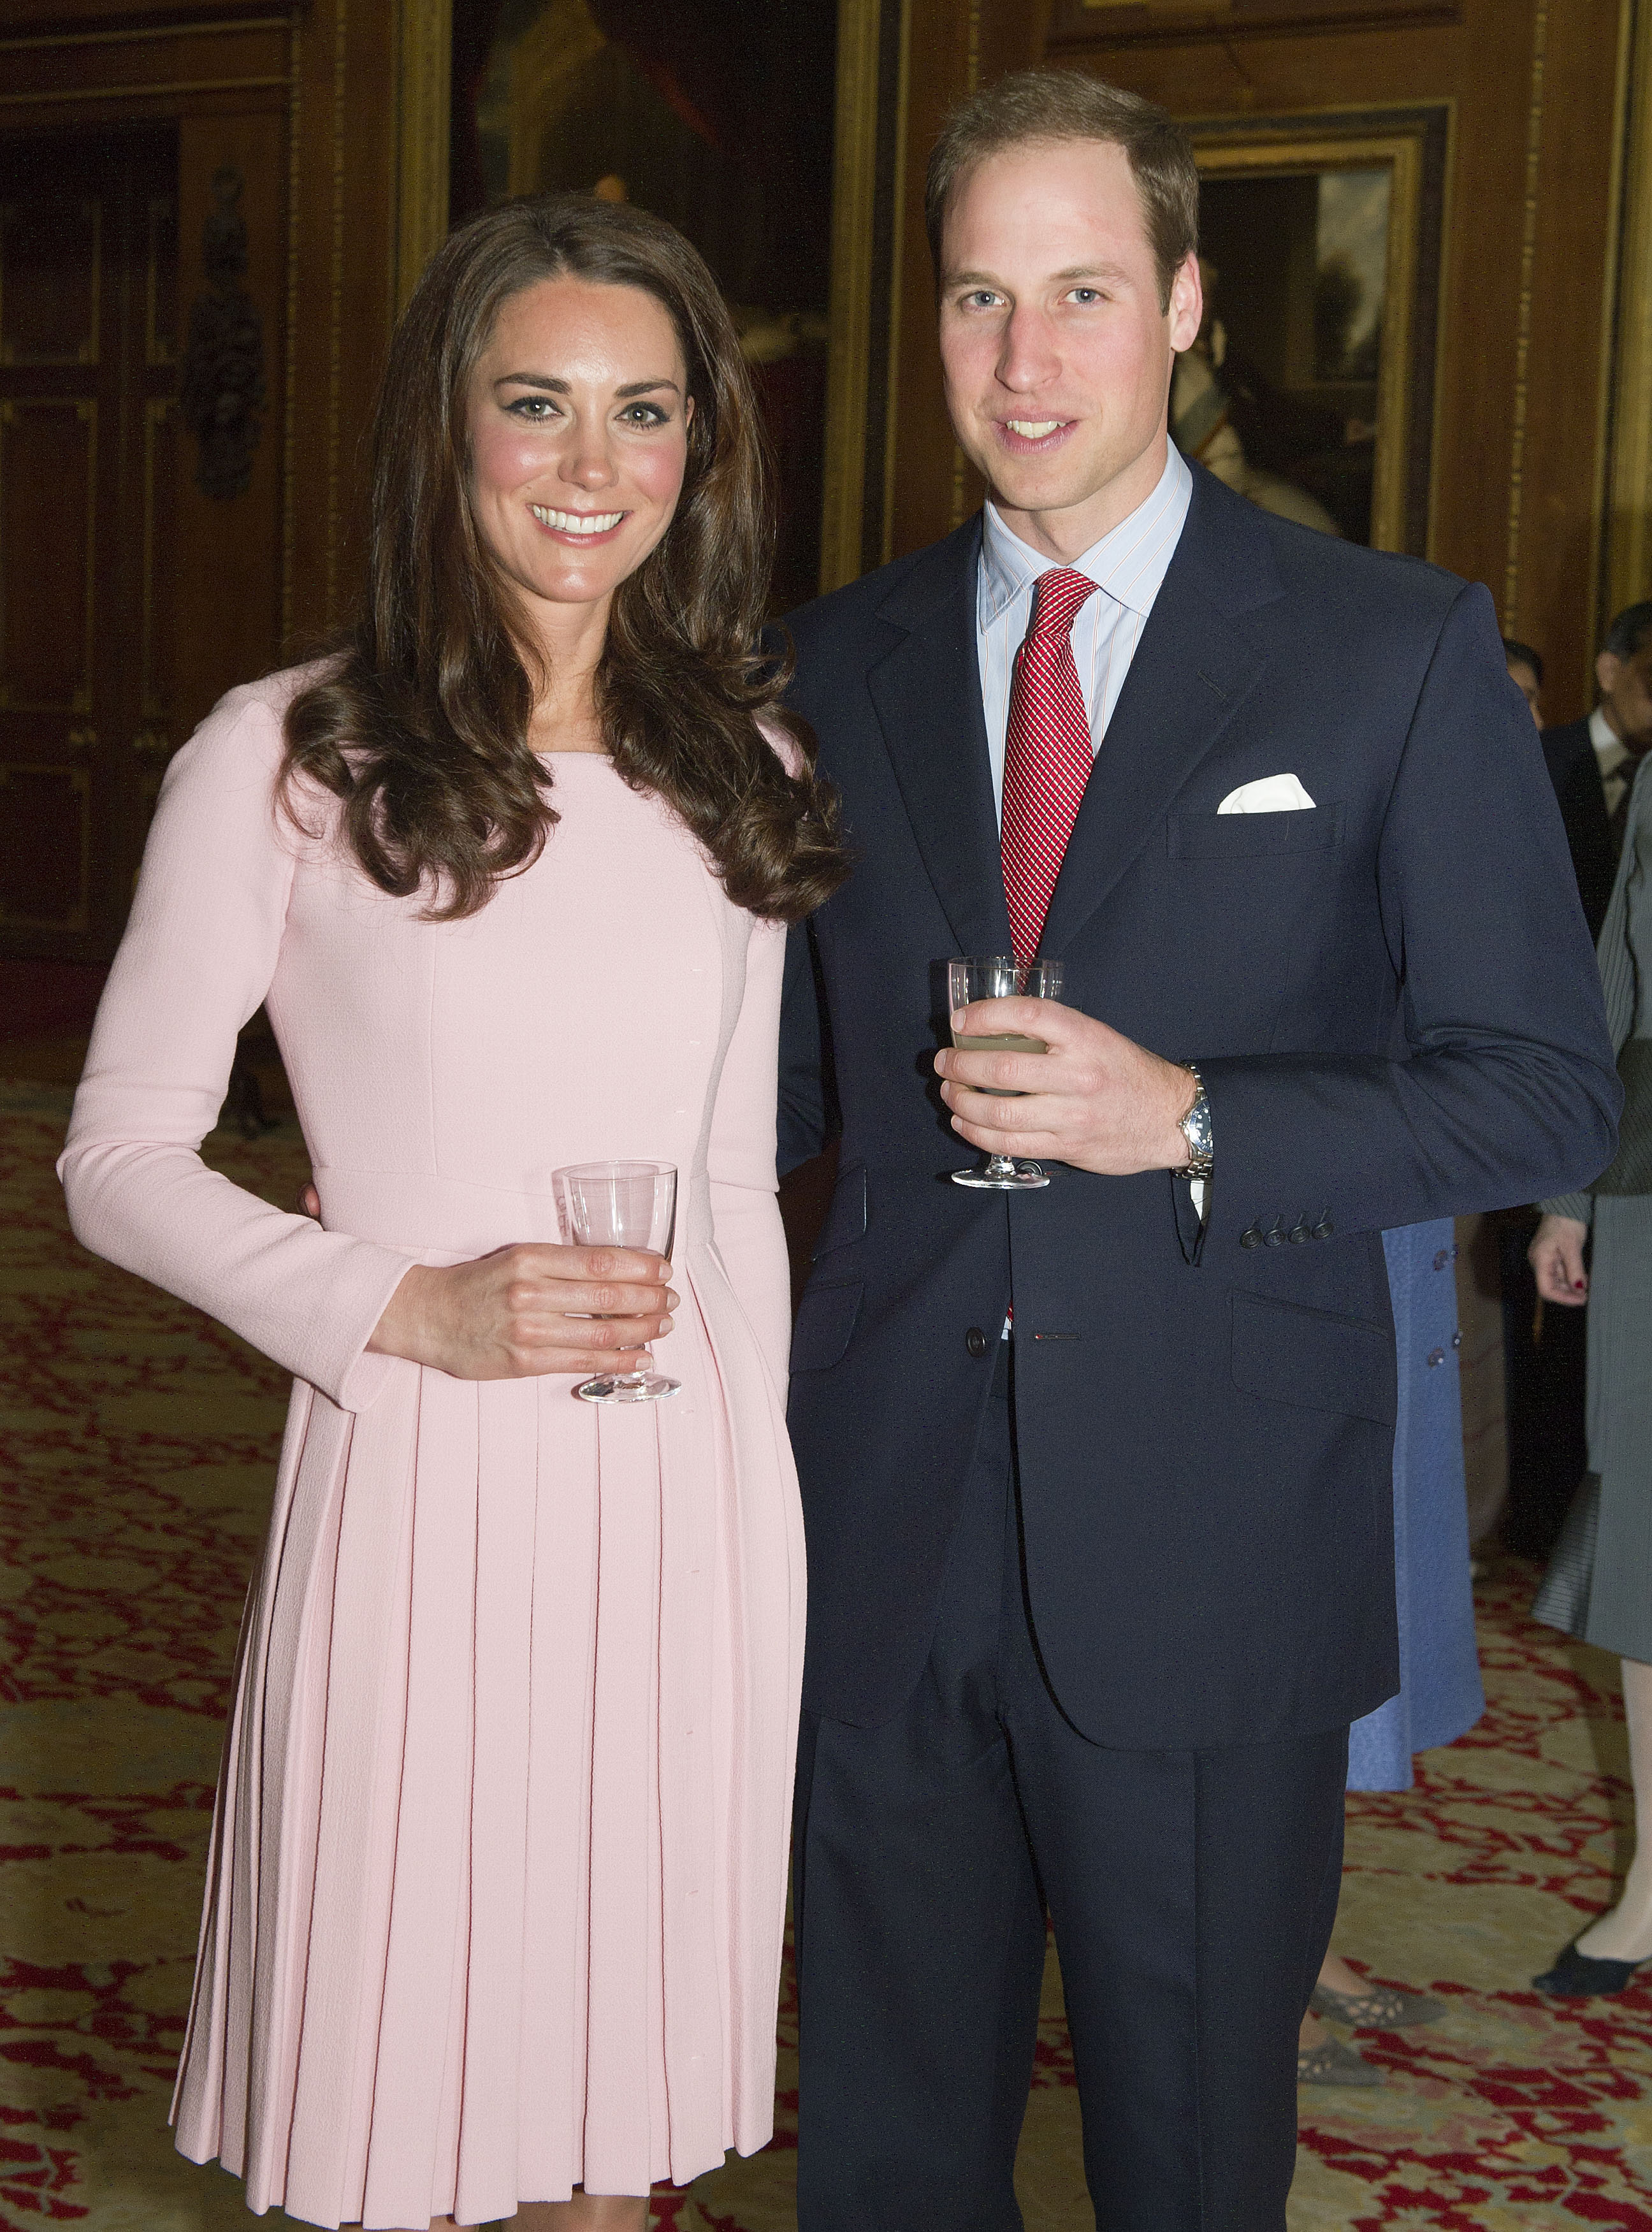 <strong>Pretty in Pink</strong>                                   On May 18, 2012, the Duchess wore a pretty and pink Emilia Wickstead fitted frock at the Lunch For Sovereign Monarchs event at Windsor Castle.